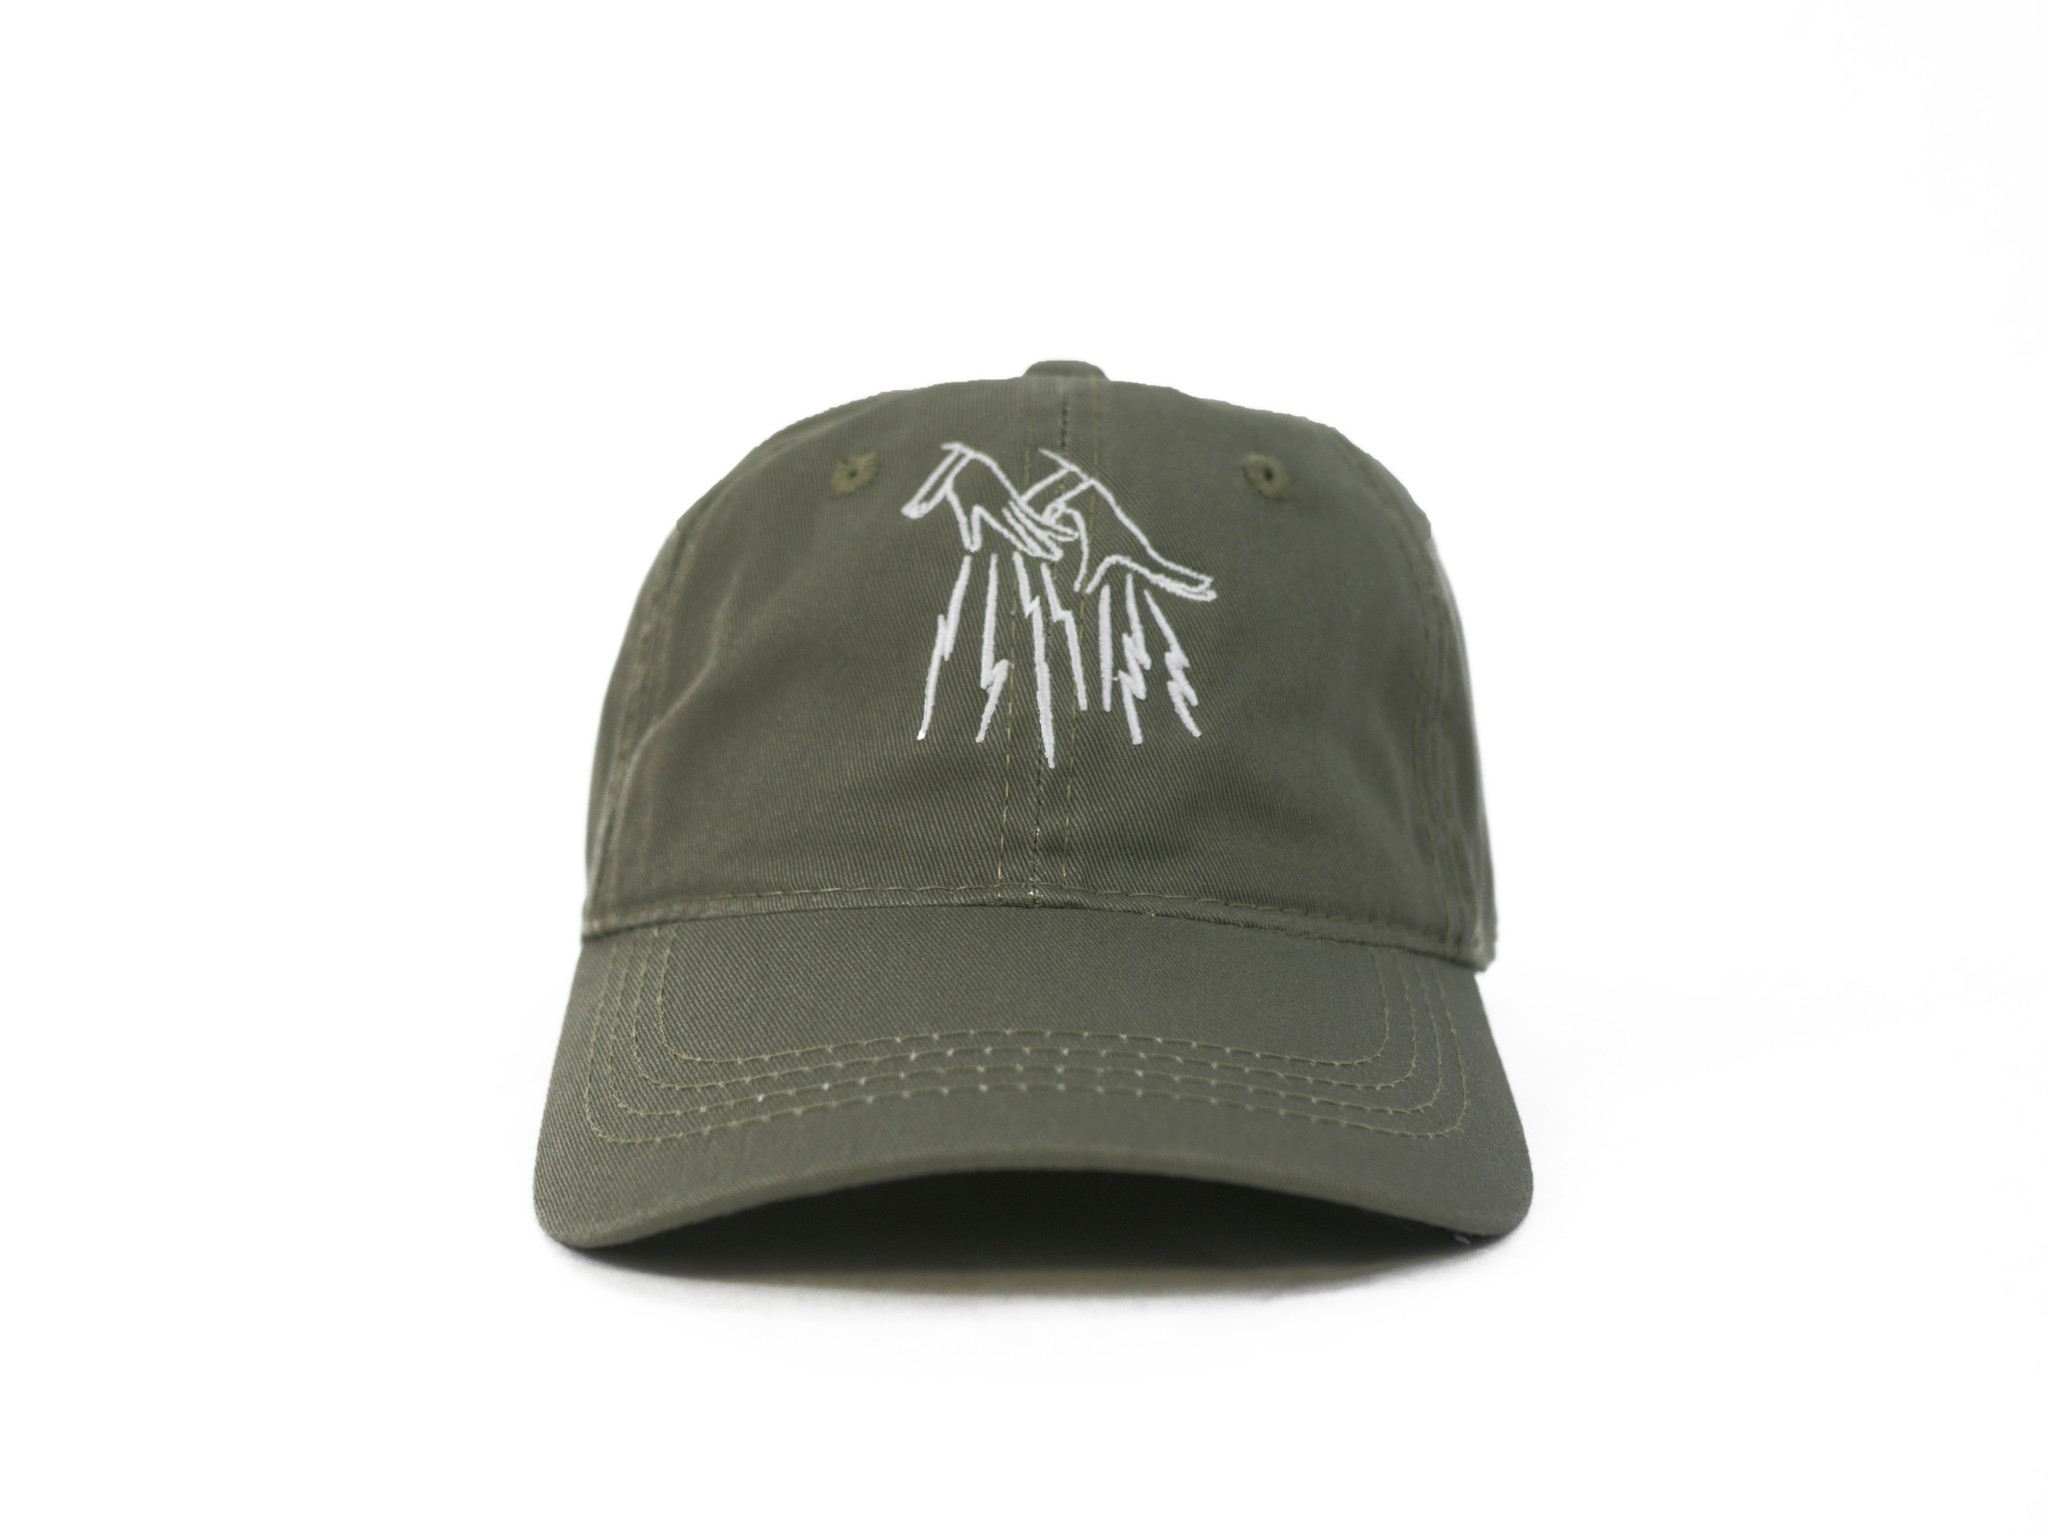 73066e305c5 FAKE JUNK LOGO DAD HAT OLIVE